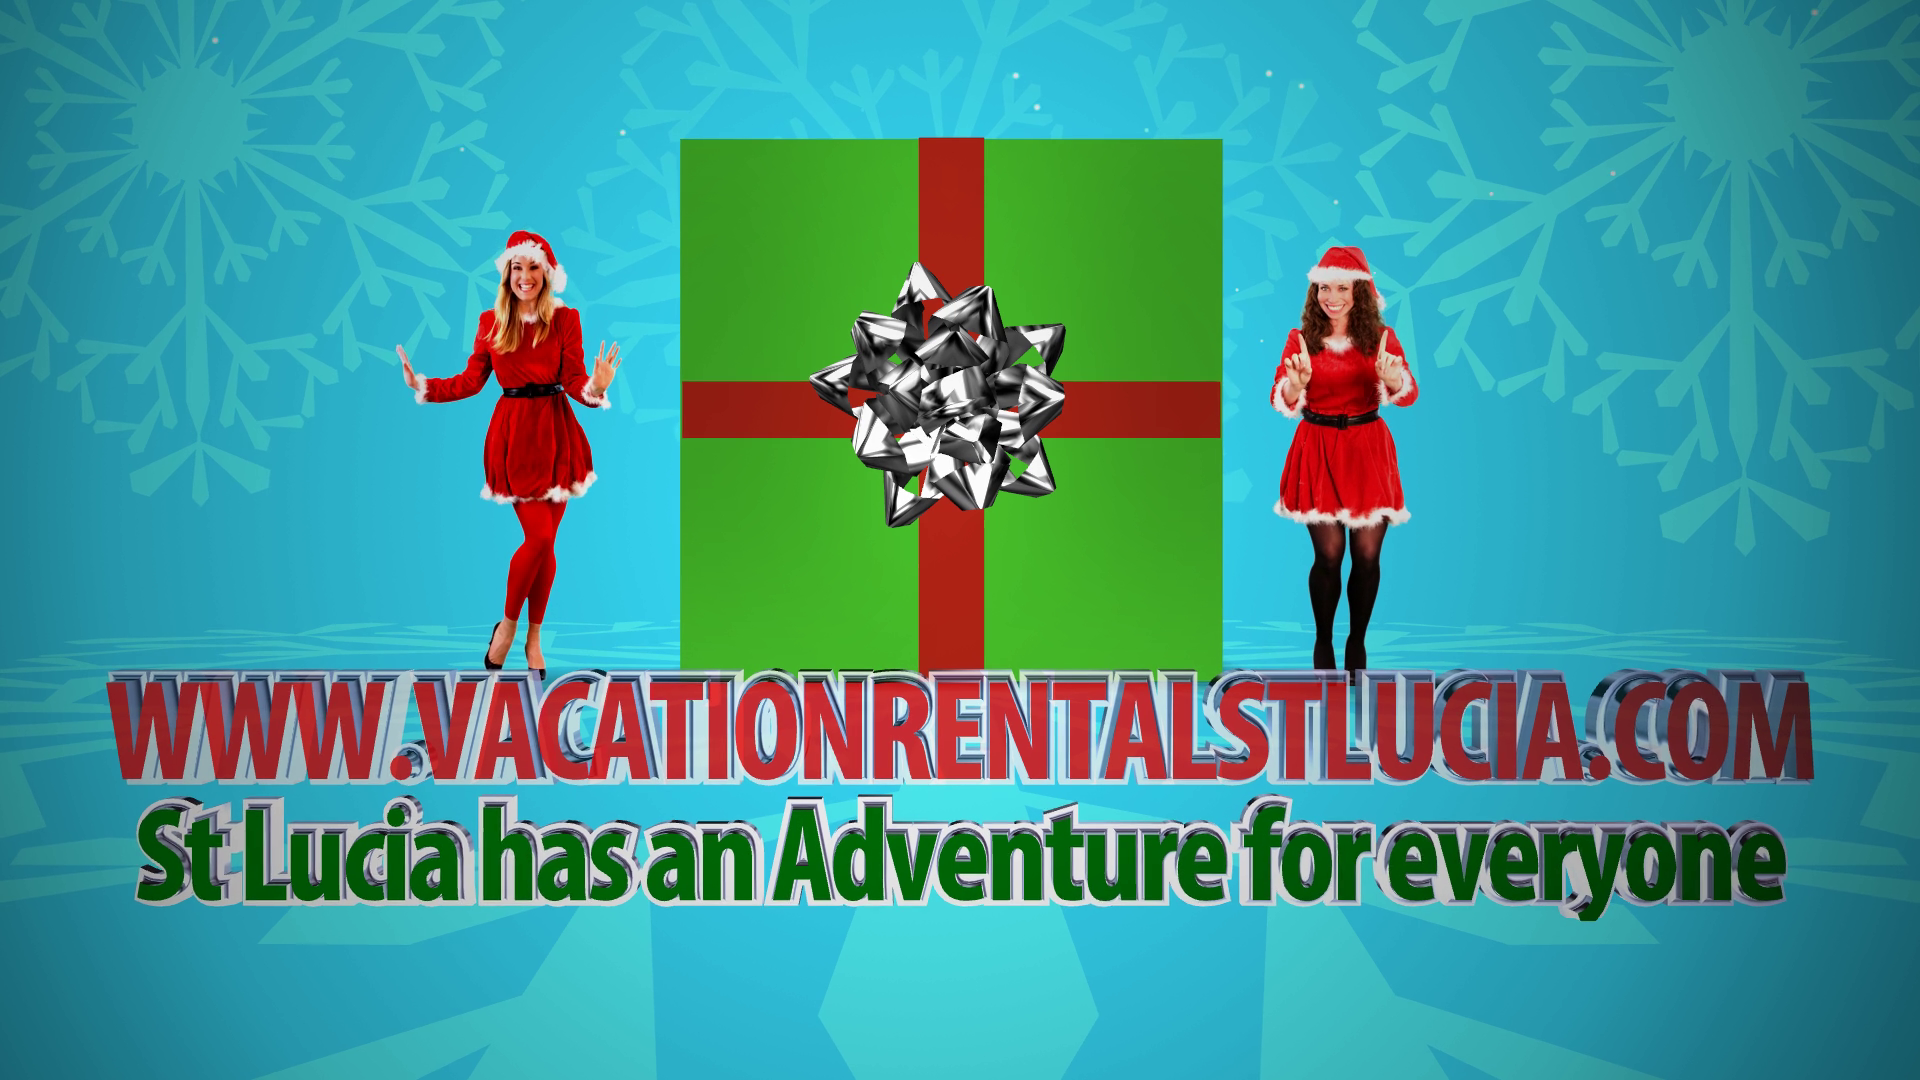 Happy Holidays From Vacation Rental St Lucia